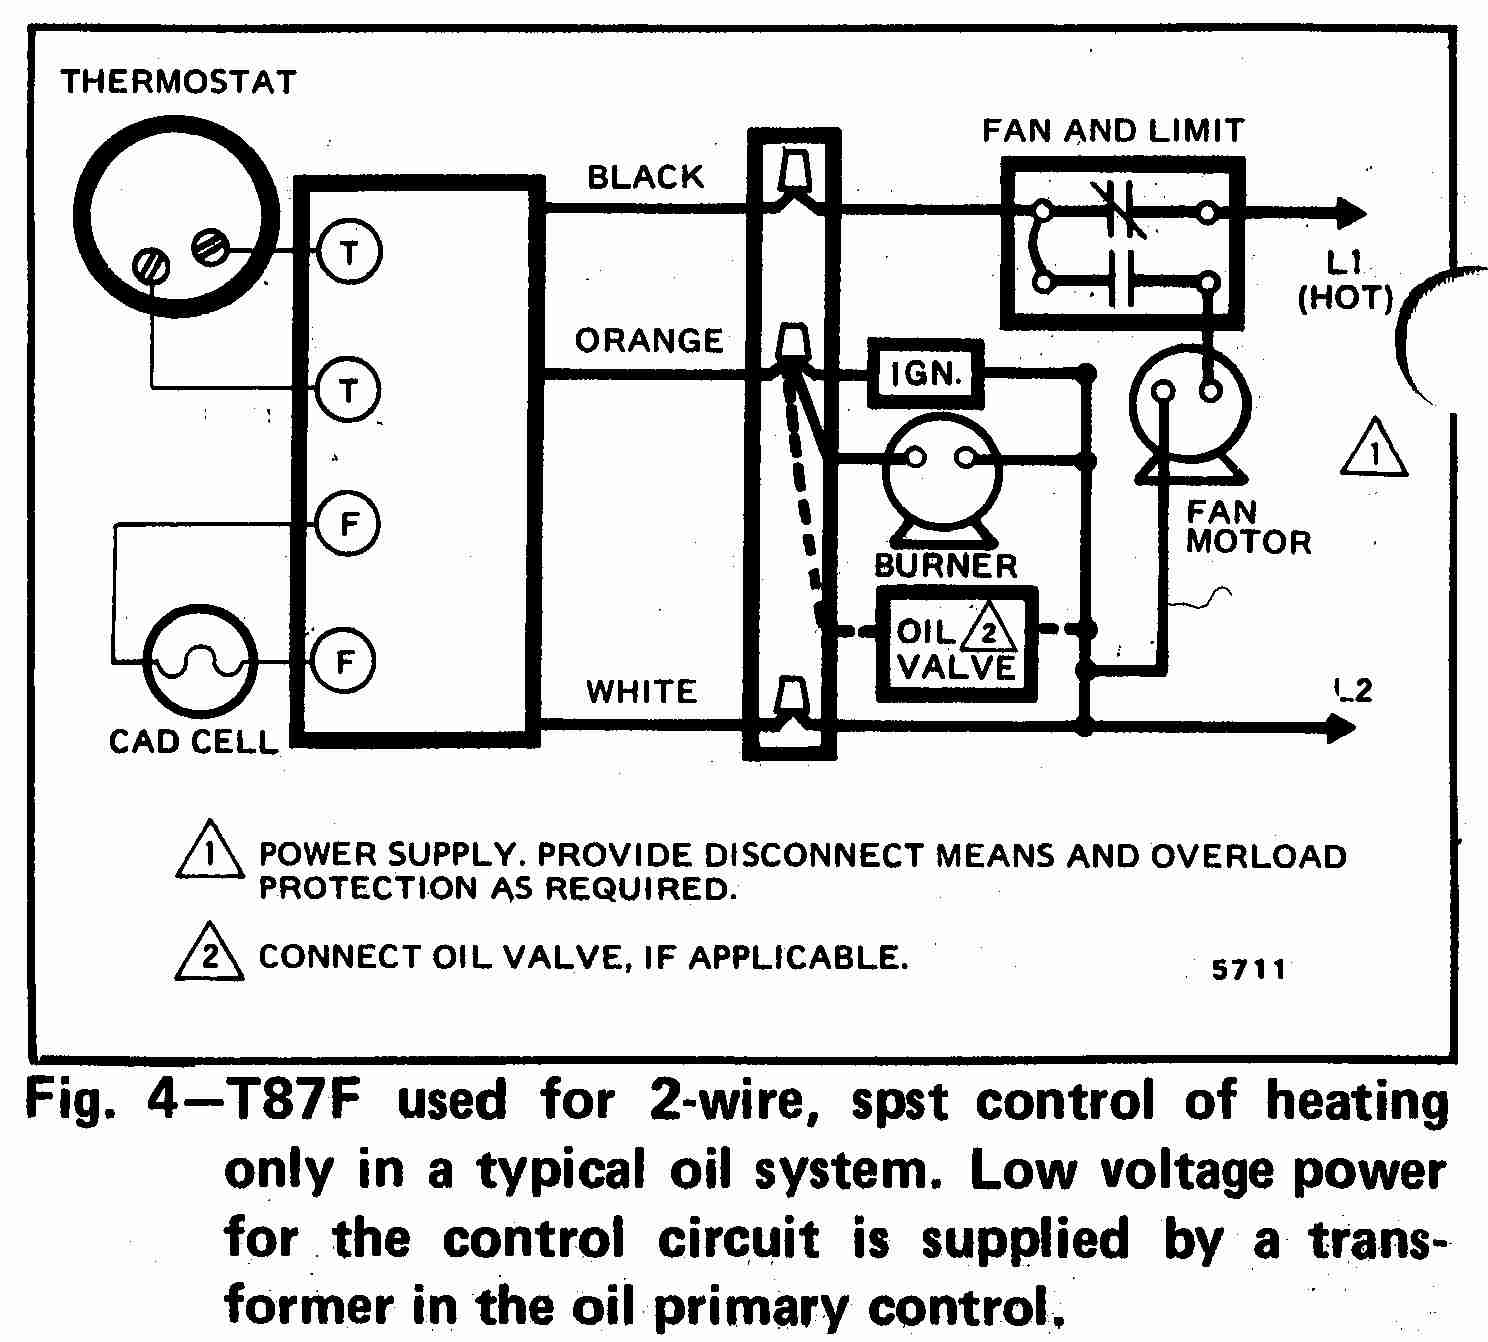 Fabulous Hvac Low Voltage Wiring Wiring Diagram Wiring Digital Resources Operpmognl